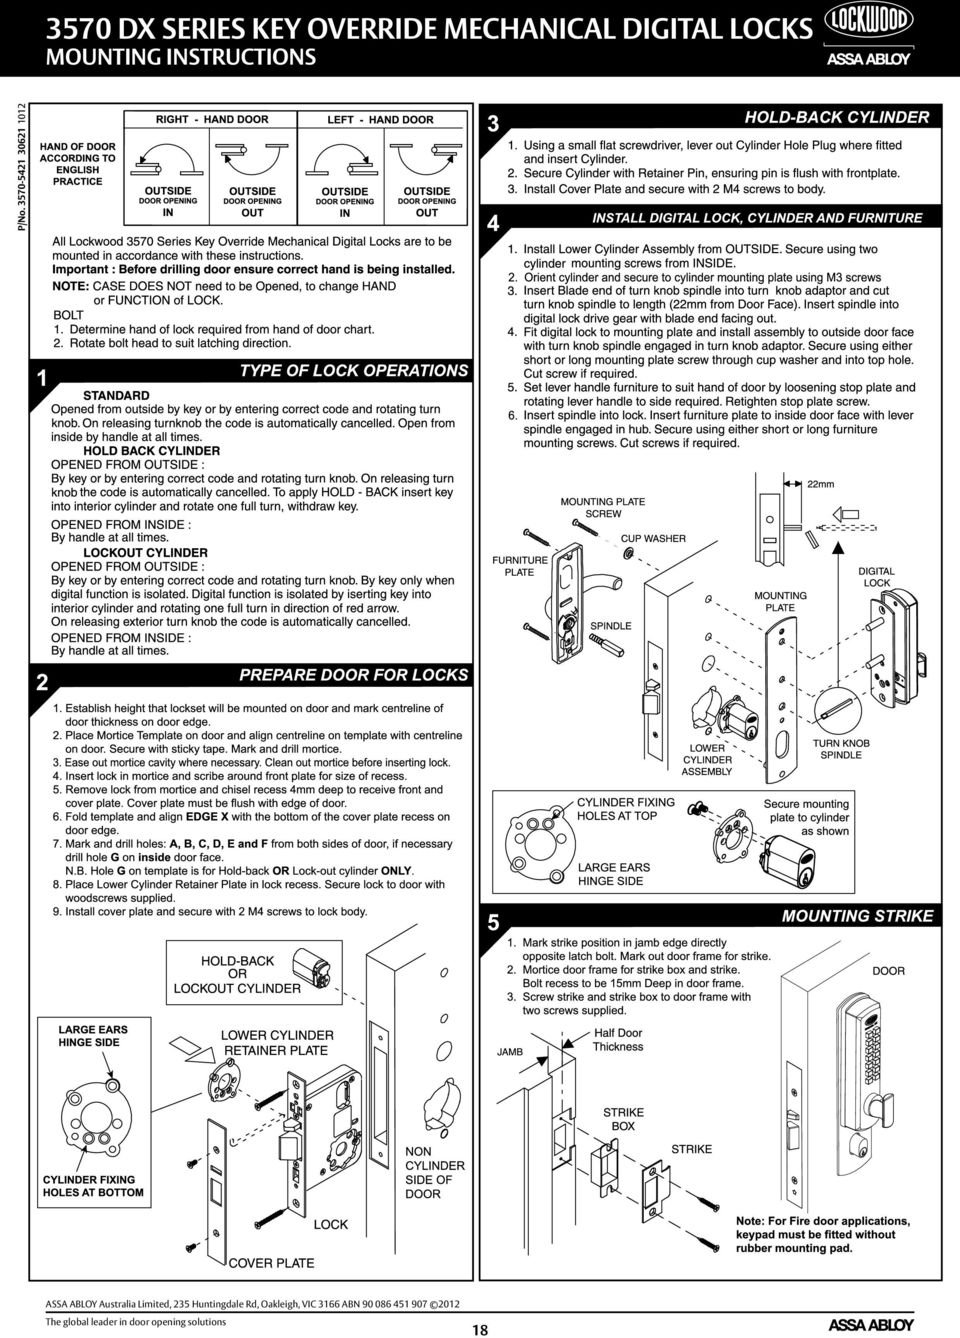 Dx Mechanical Digital Door Locks Service Manual Assa Abloy The Diagram How To Replace A Defective Sliding Latch Ford 235 Huntingdale Rd Oakleigh Vic 3166 Abn 90 086 451